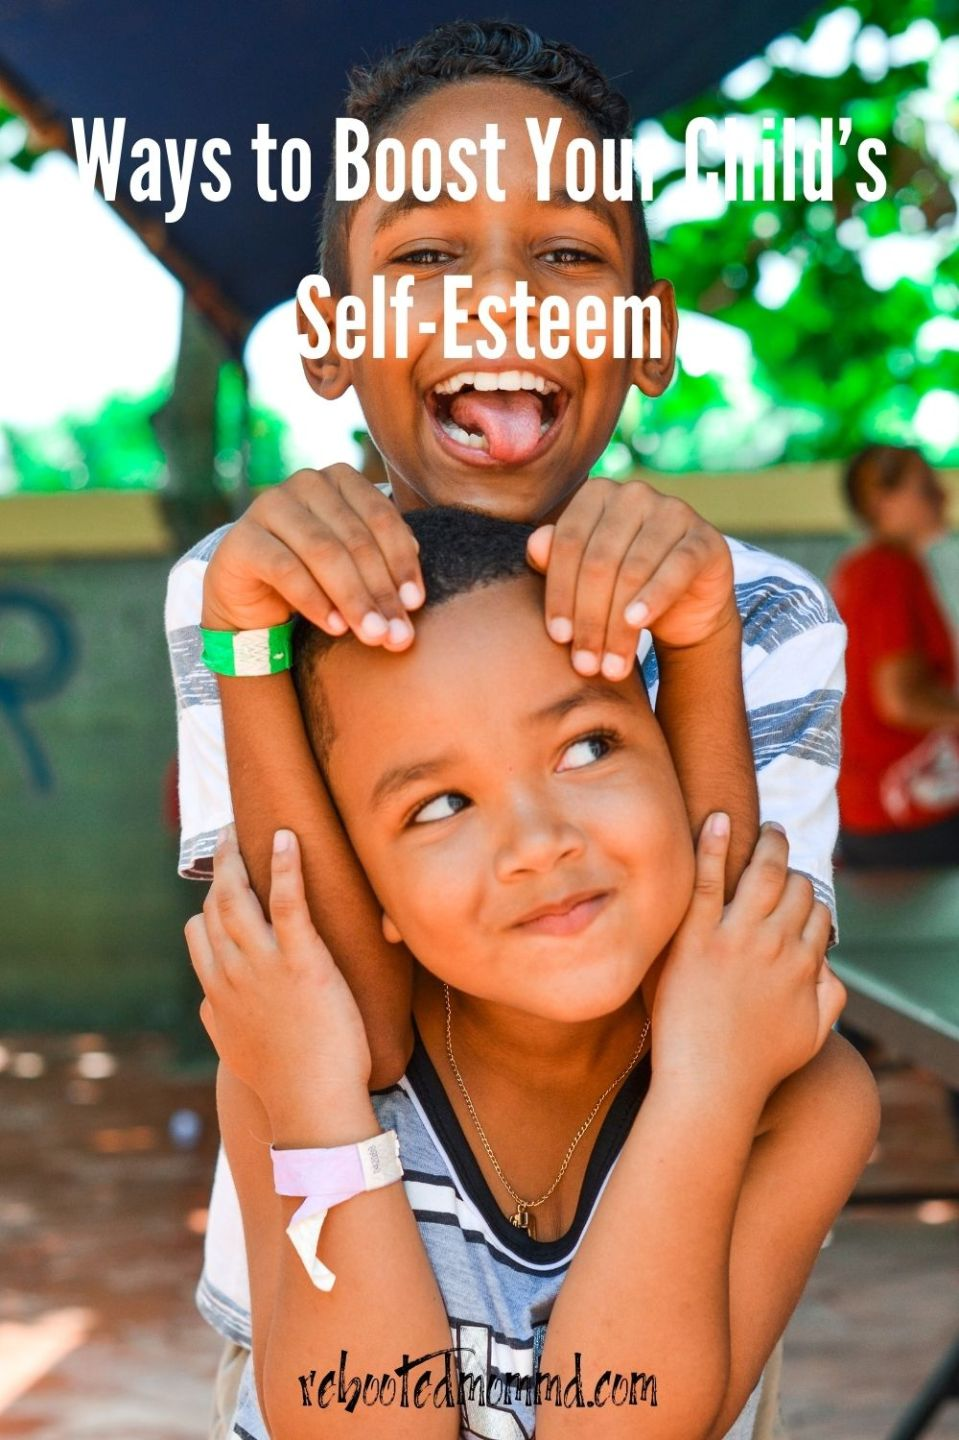 Ways to Boost Your Child's Self-Esteem